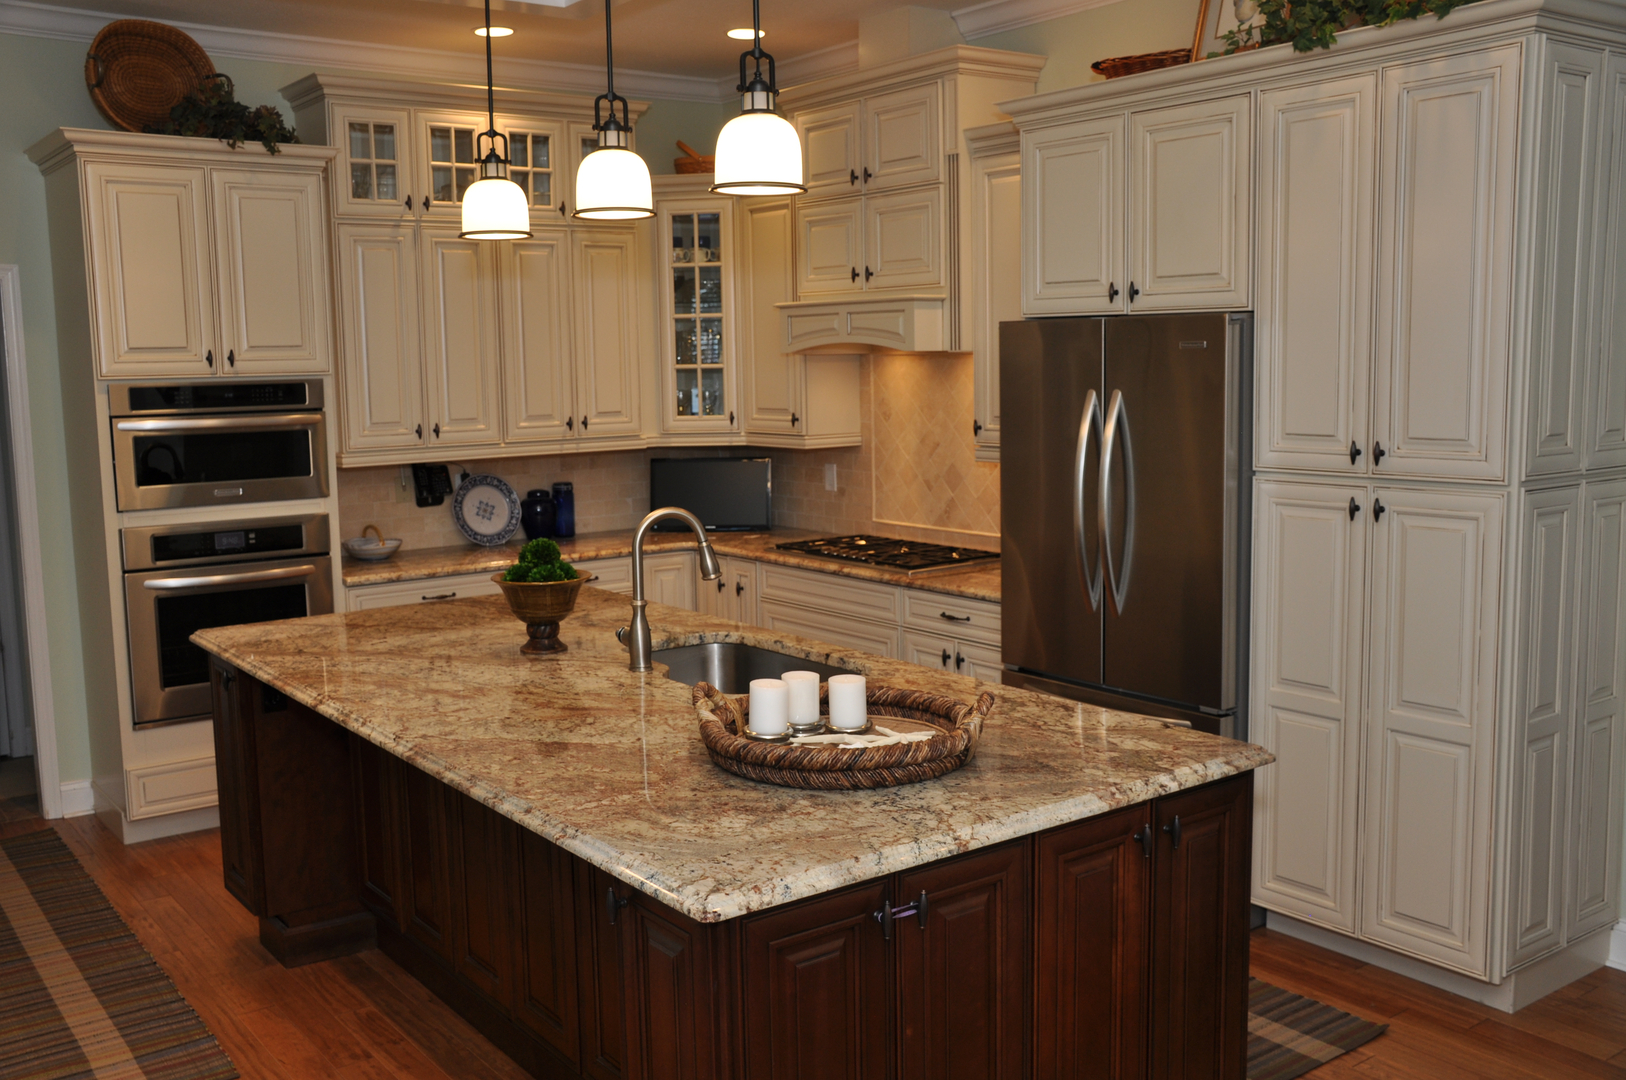 CSD KITCHEN AND BATH, LLC KITCHEN CABINET NEW JERSEY, KITCHEN DESIGN ...